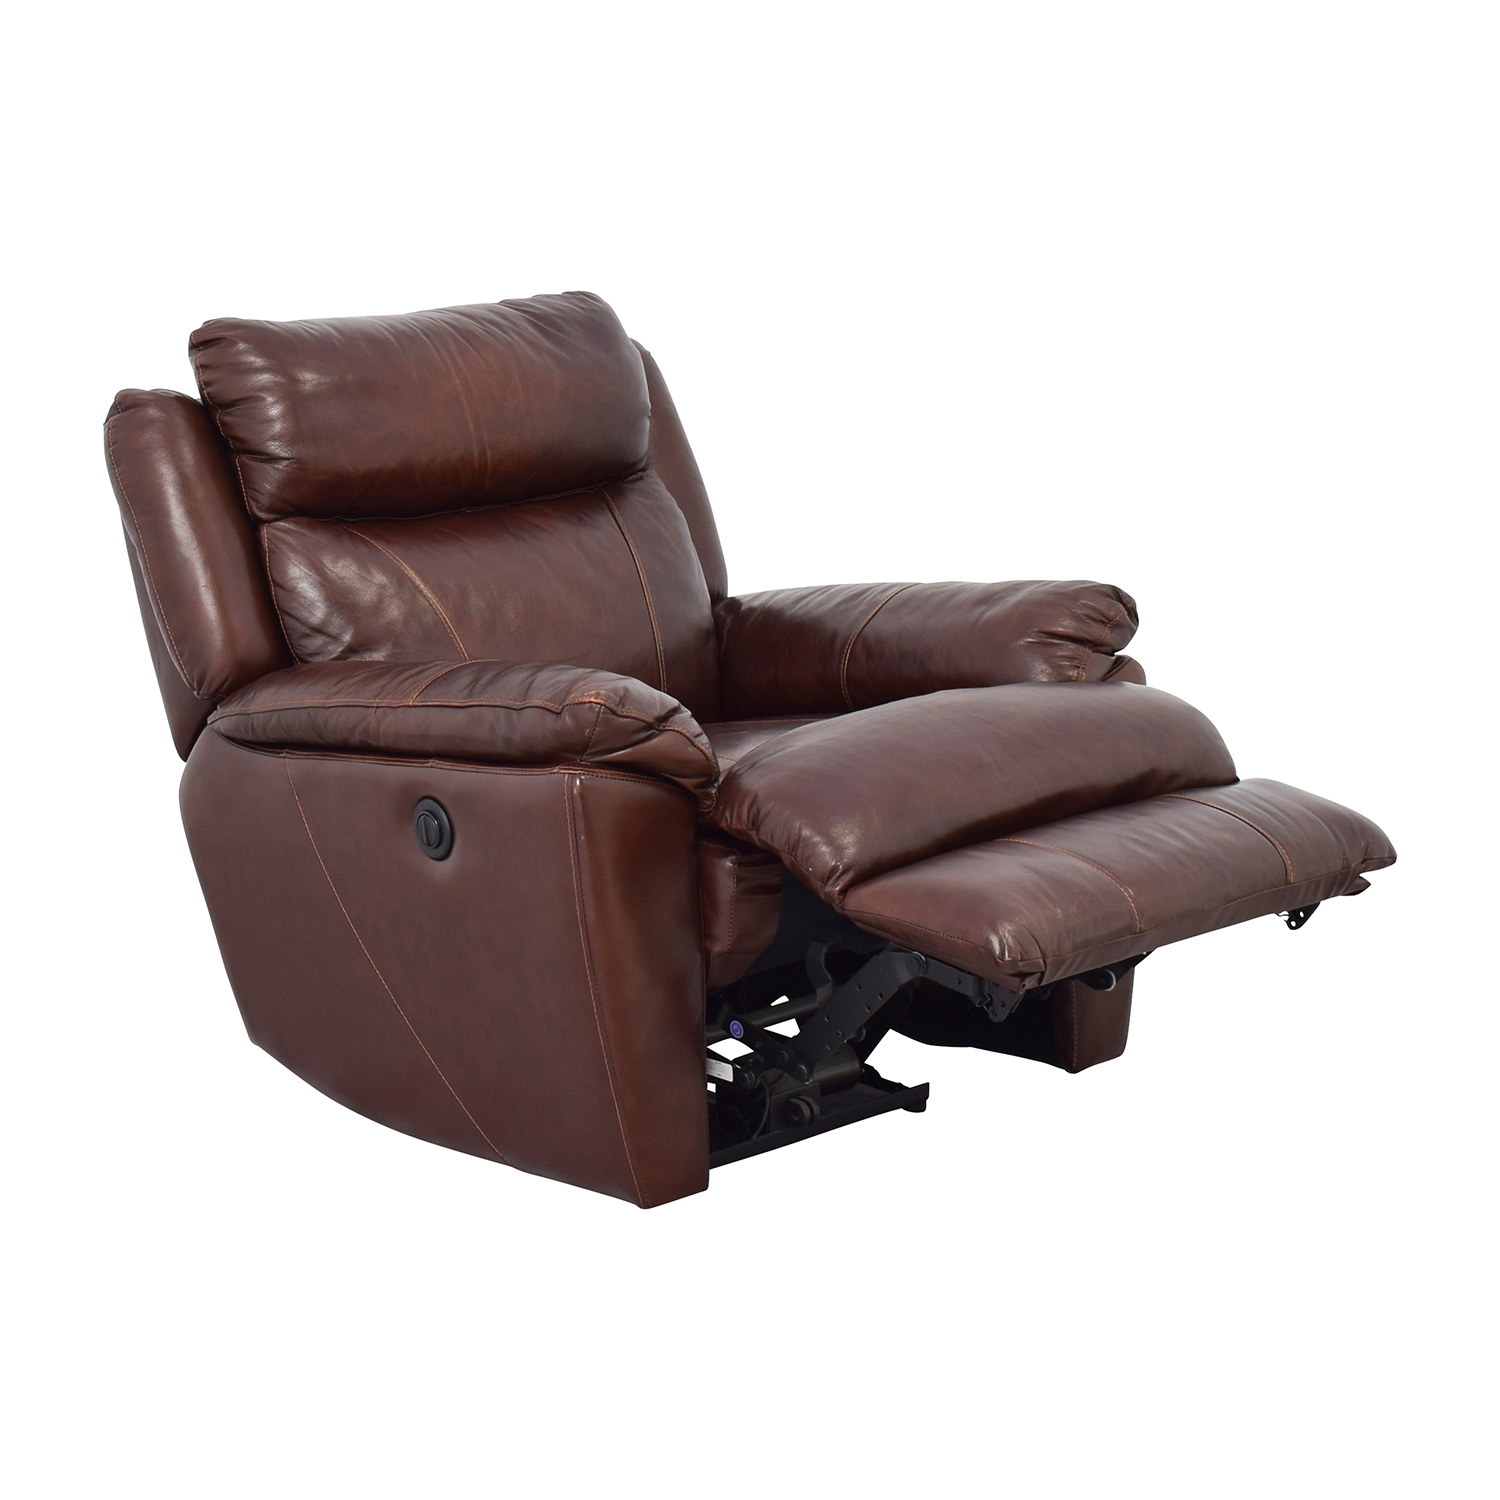 Macys Macys Brown Leather Power Recliner nj